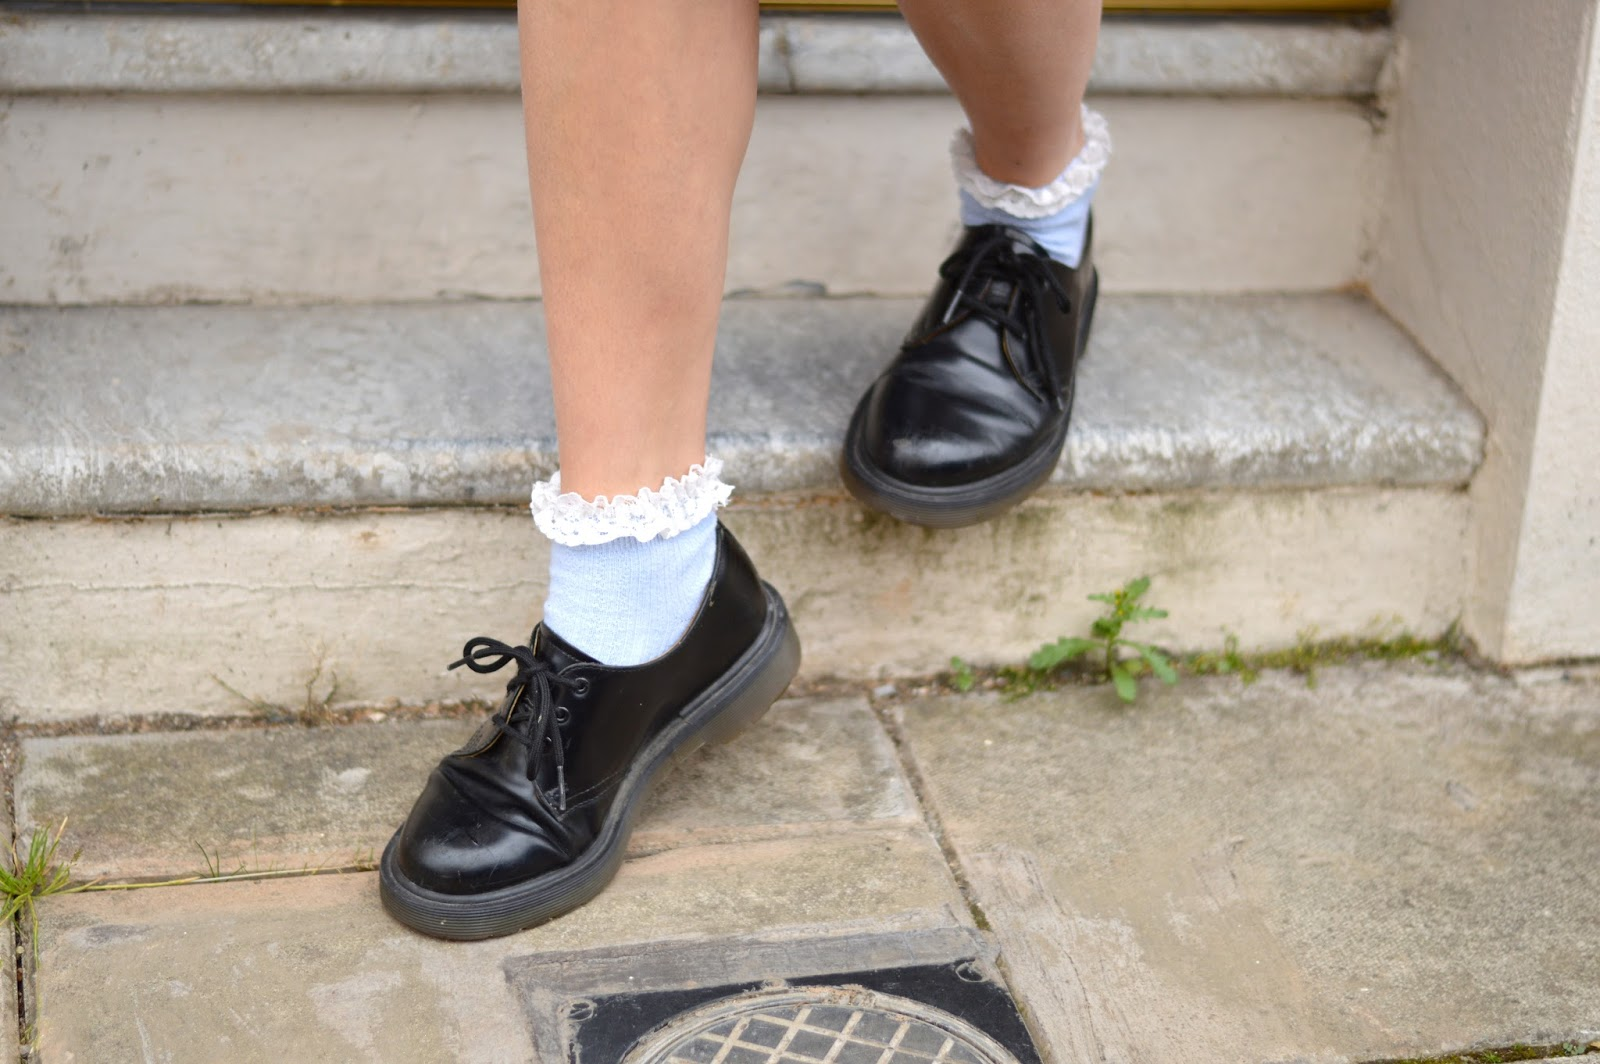 Dr Martens shoes and frilly socks